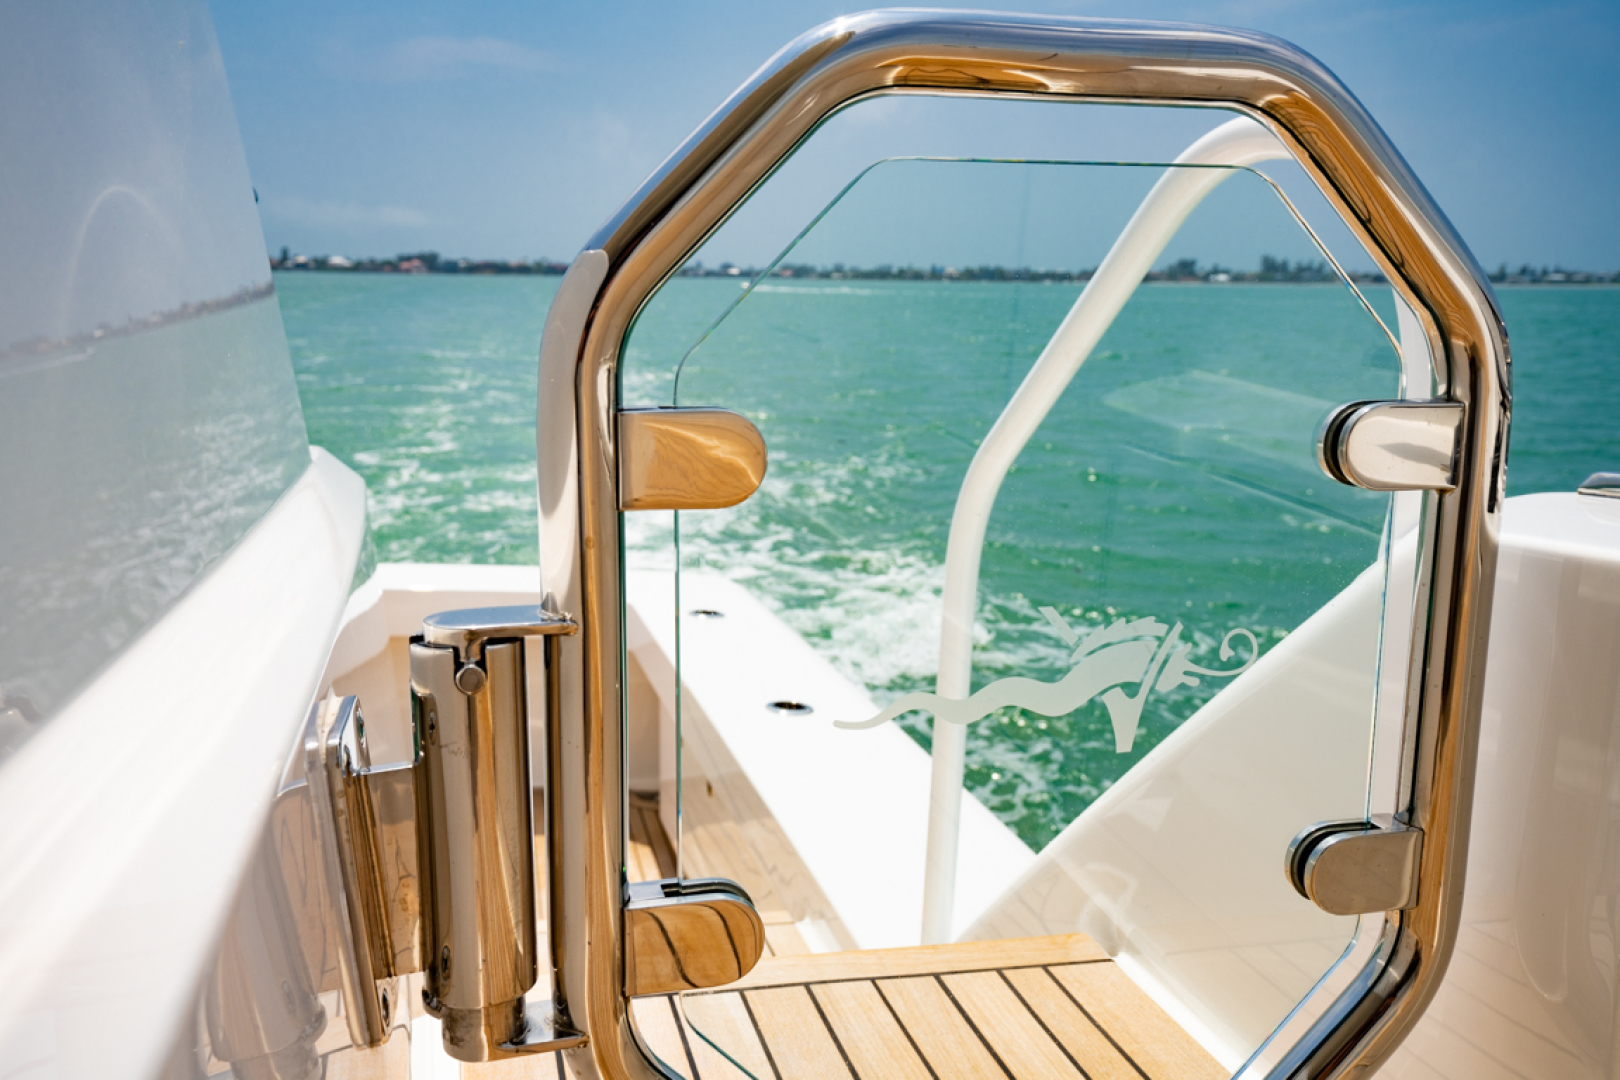 Viking-82 Cockpit MY 2019-Make It Happen Sanibel -Florida-United States-Viking 82CPMY Make It Happen Safety Gate-1378575 | Thumbnail